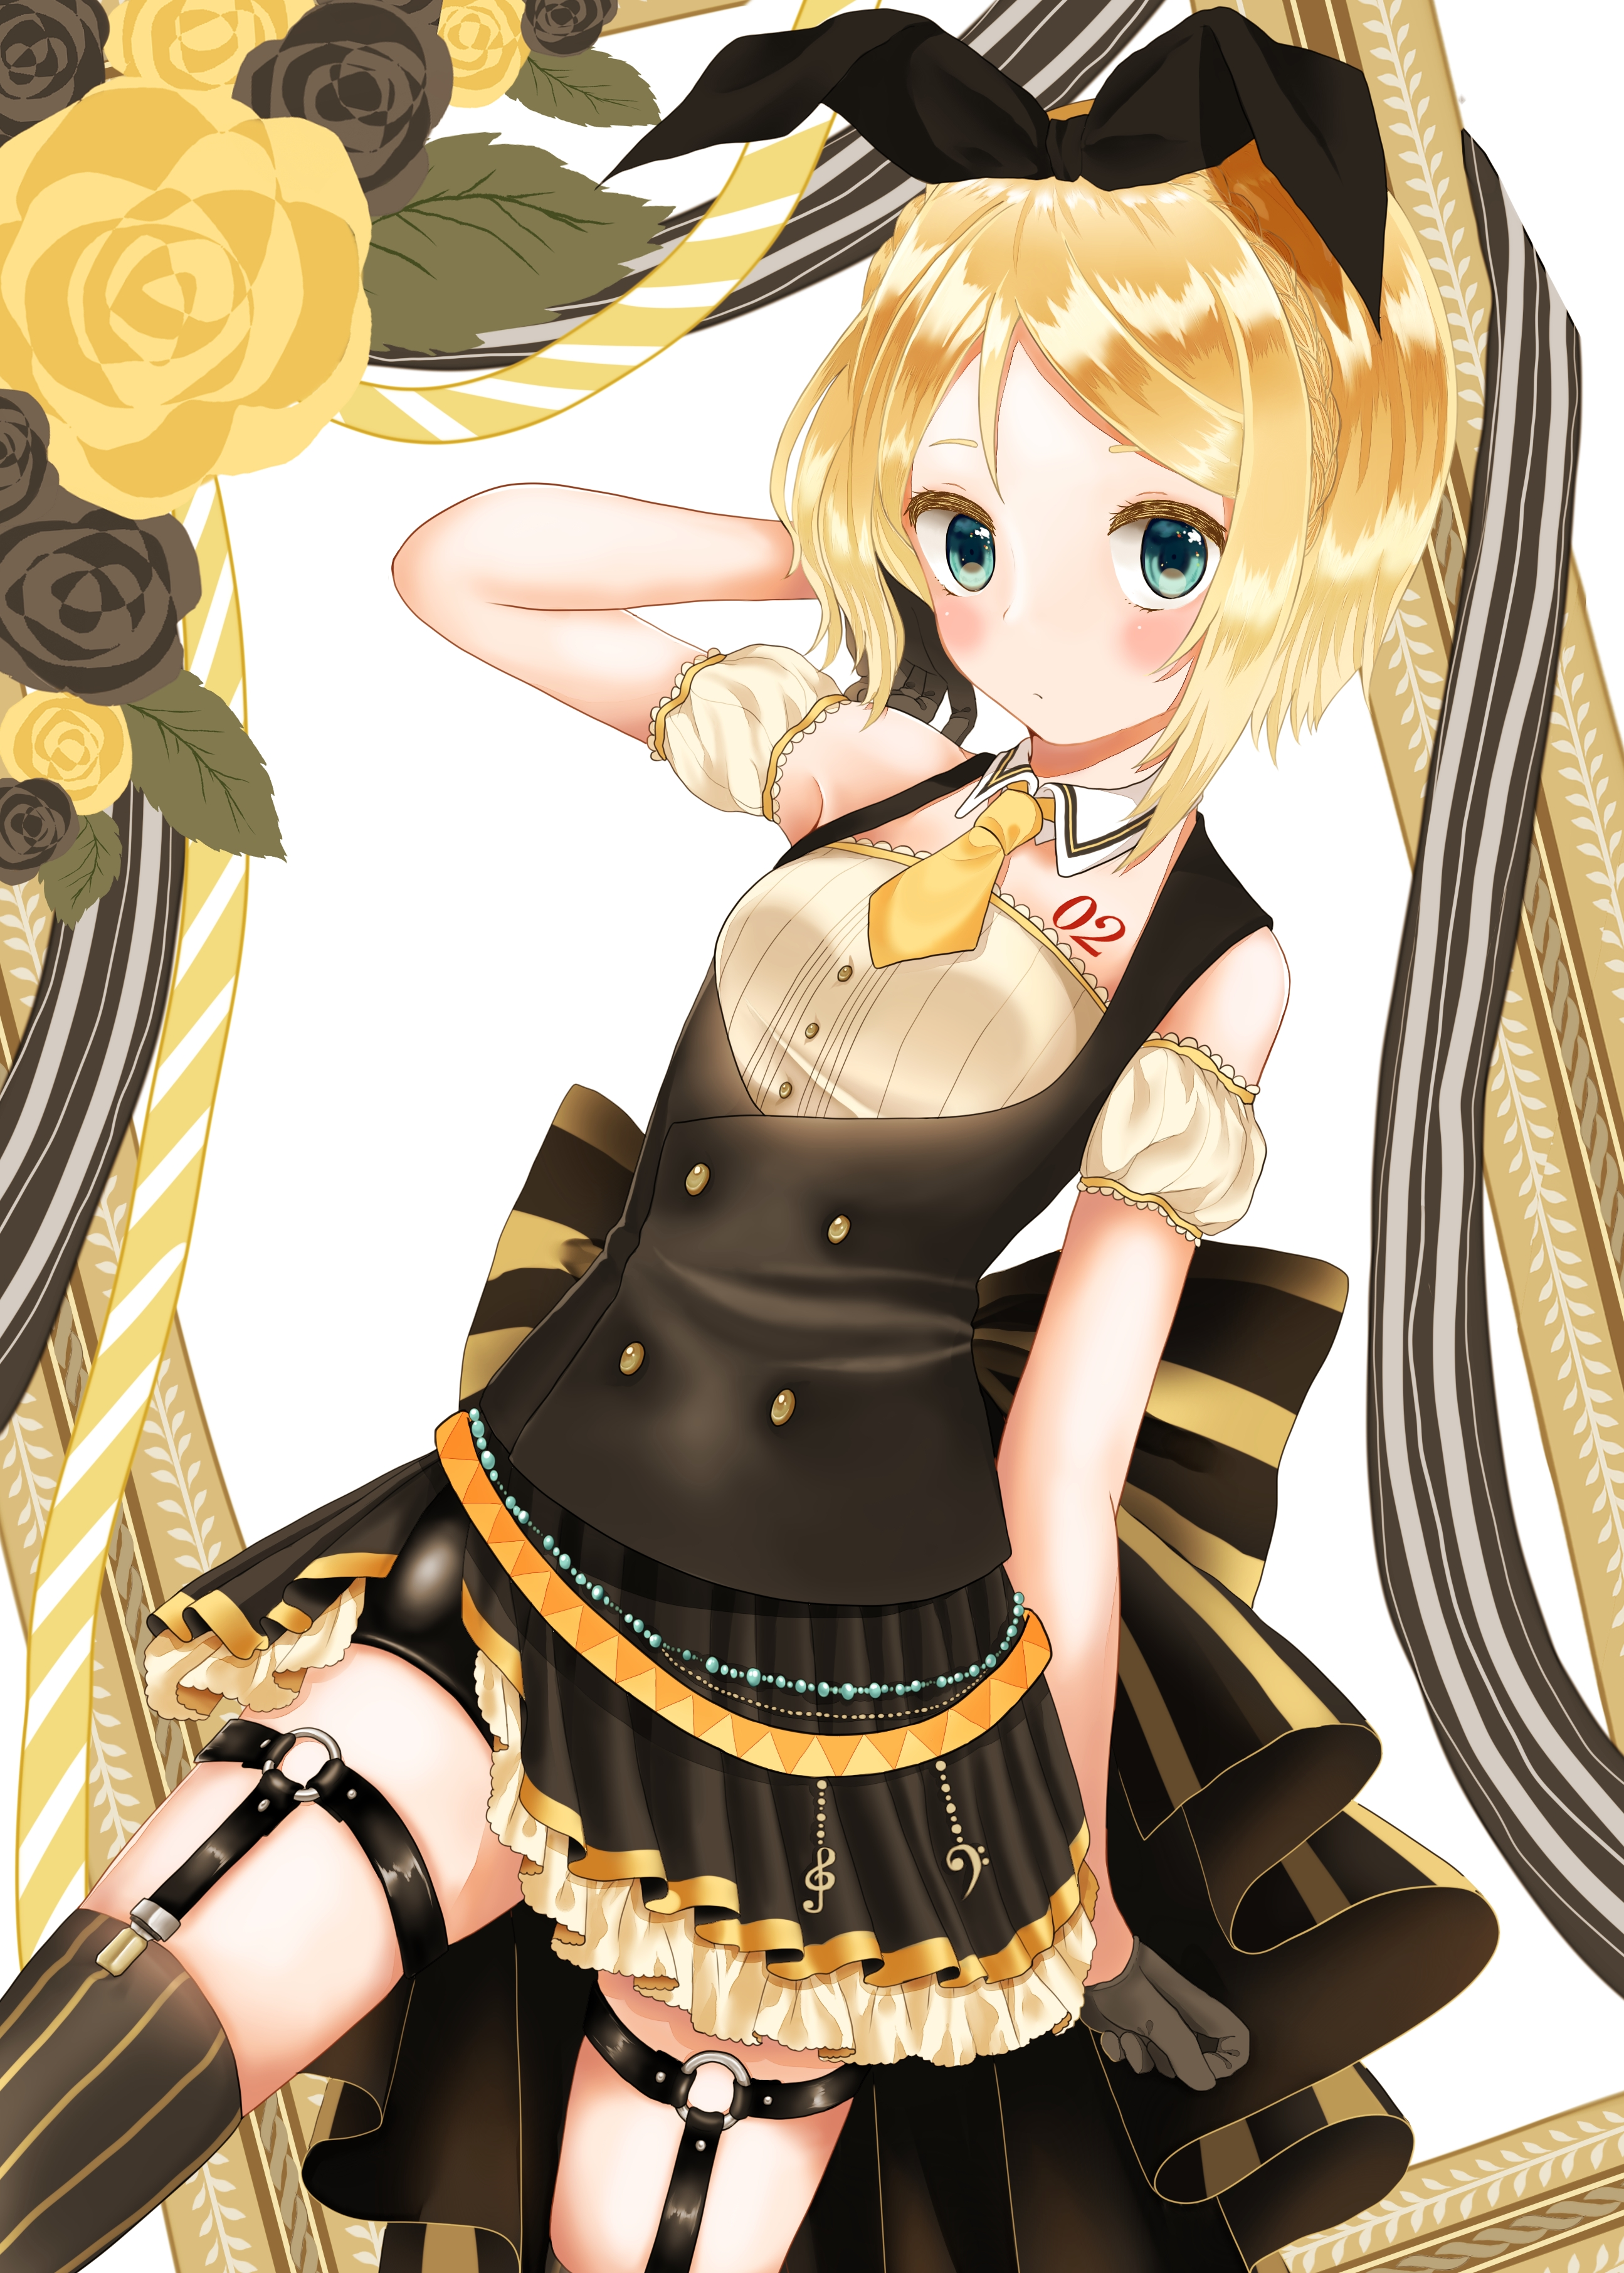 Kagamine Rin Wallpapers - Wallpaper Cave  |Rin Kagamine Anime